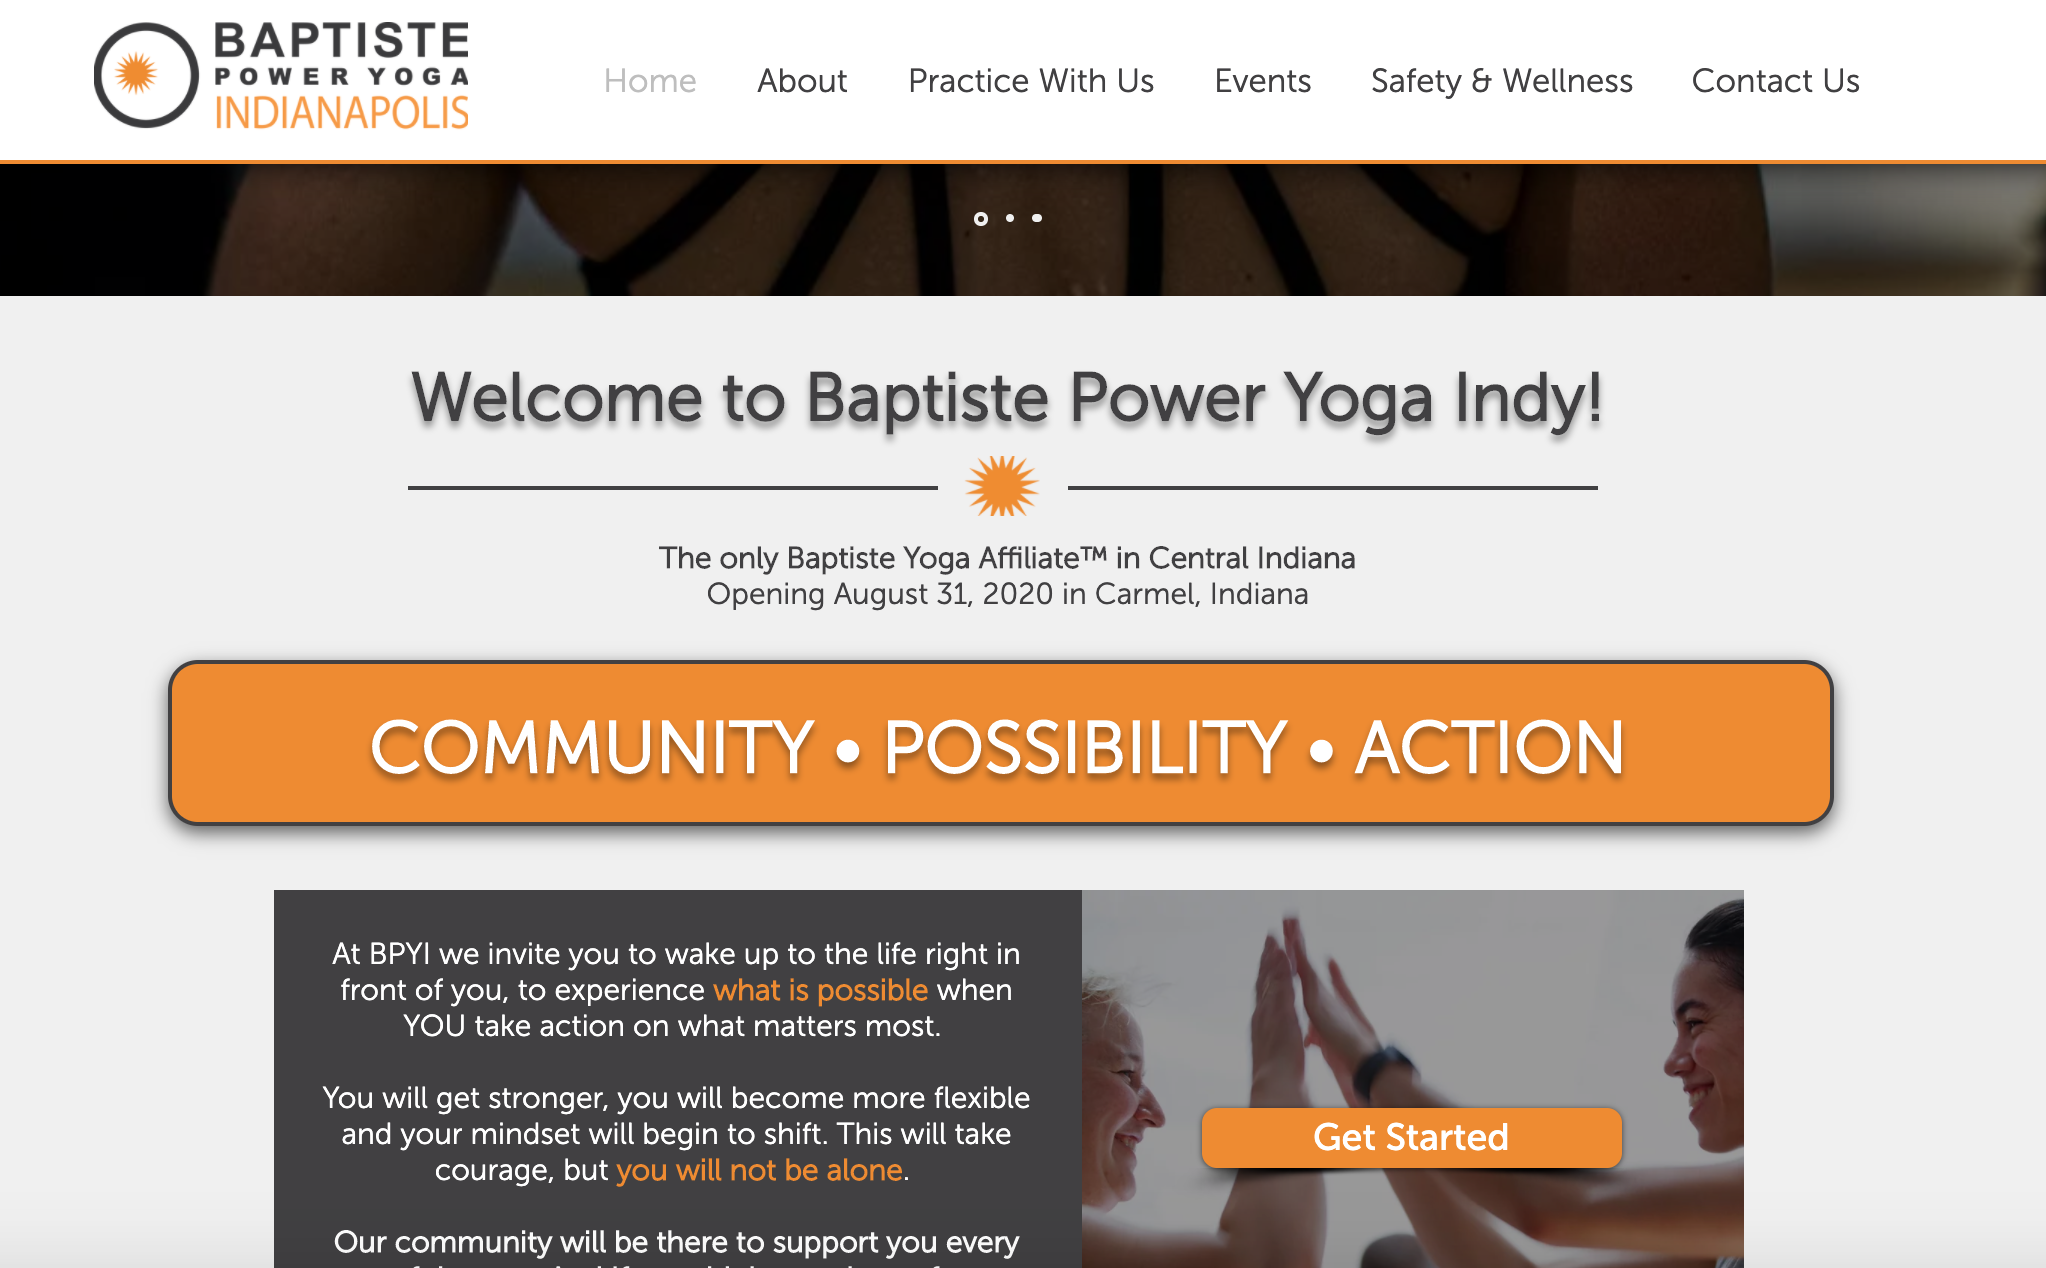 Baptiste Power Yoga Indianapolis (Wix)